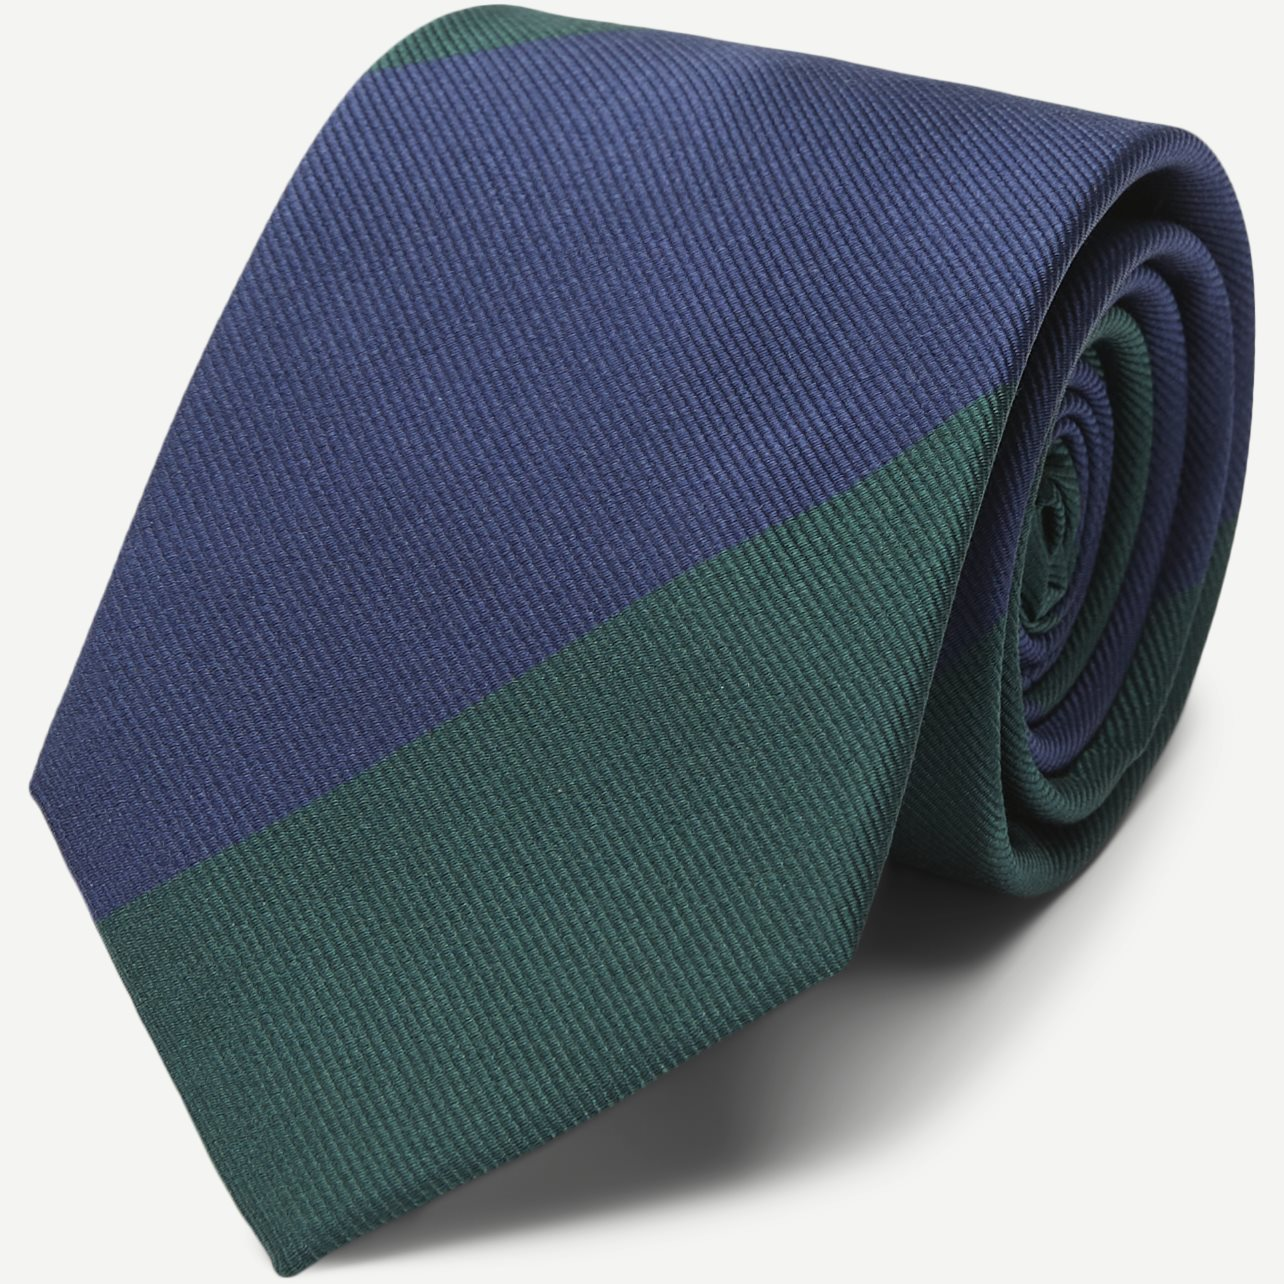 Block Silk Tie 7,5 cm - Ties - Green